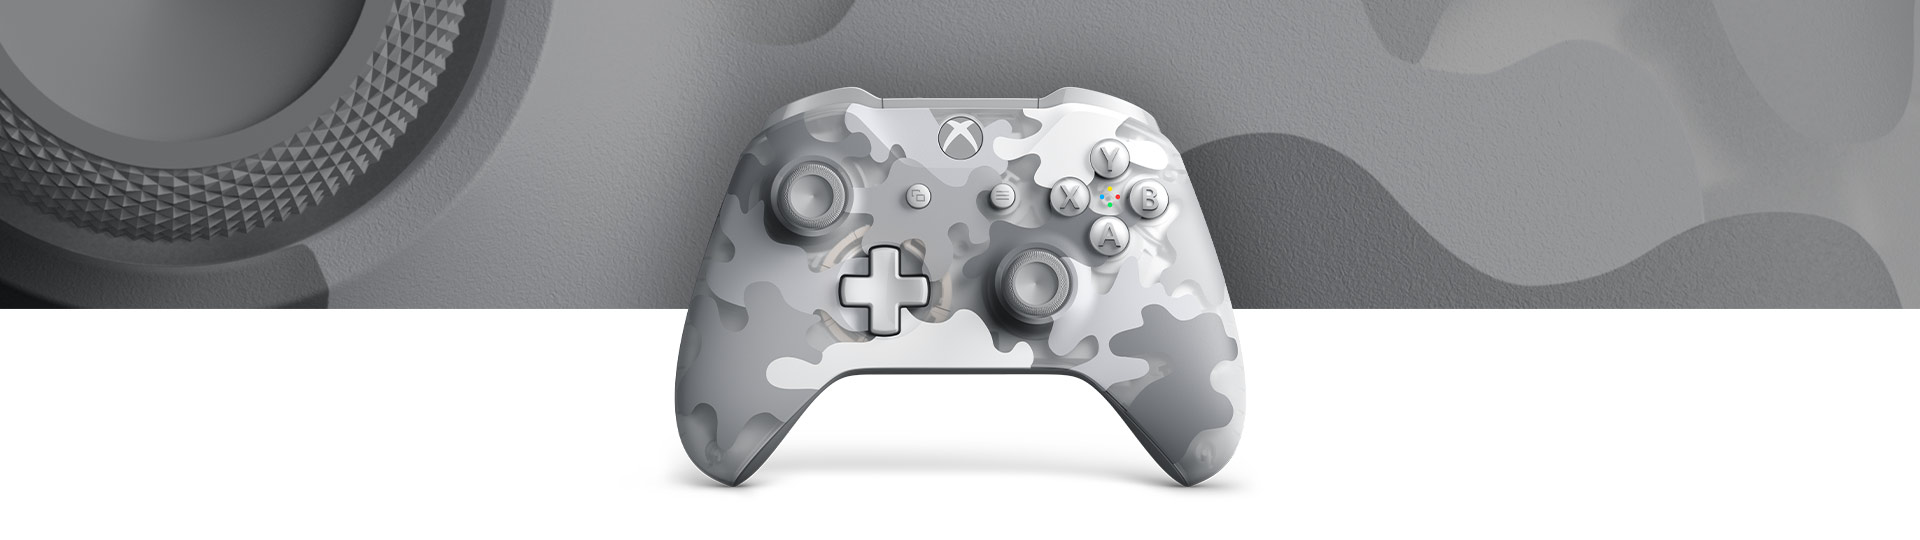 Front view of Xbox Wireless Controller - Arctic Camo Special Edition with a close-up of a translucent camouflage pattern.